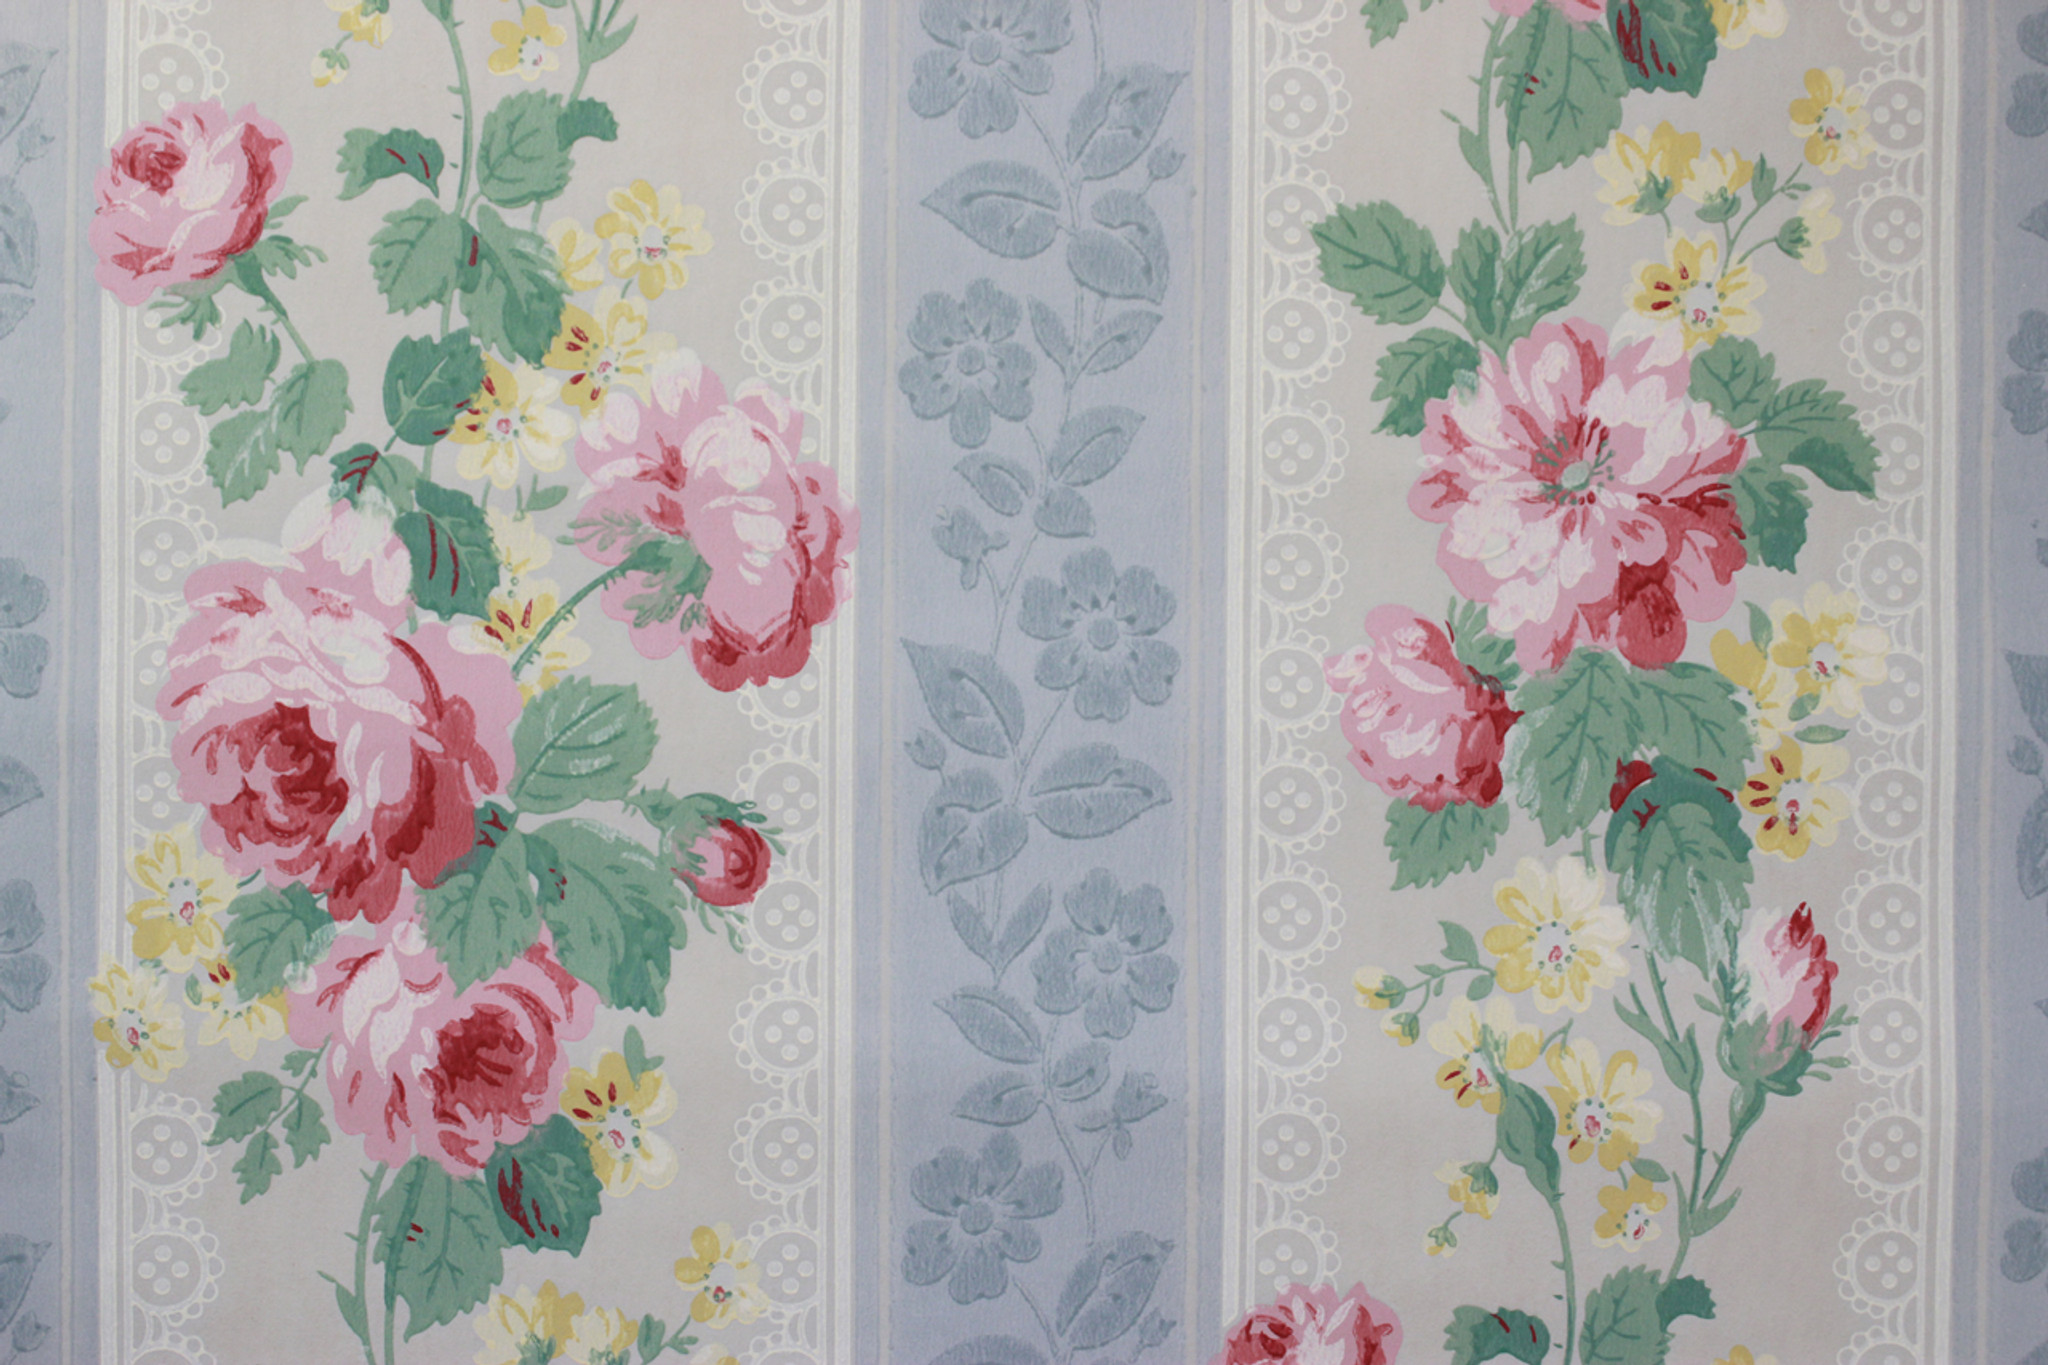 1950s Vintage Wallpaper Botanical Wallpaper with Pink and Green Flowers on Gray